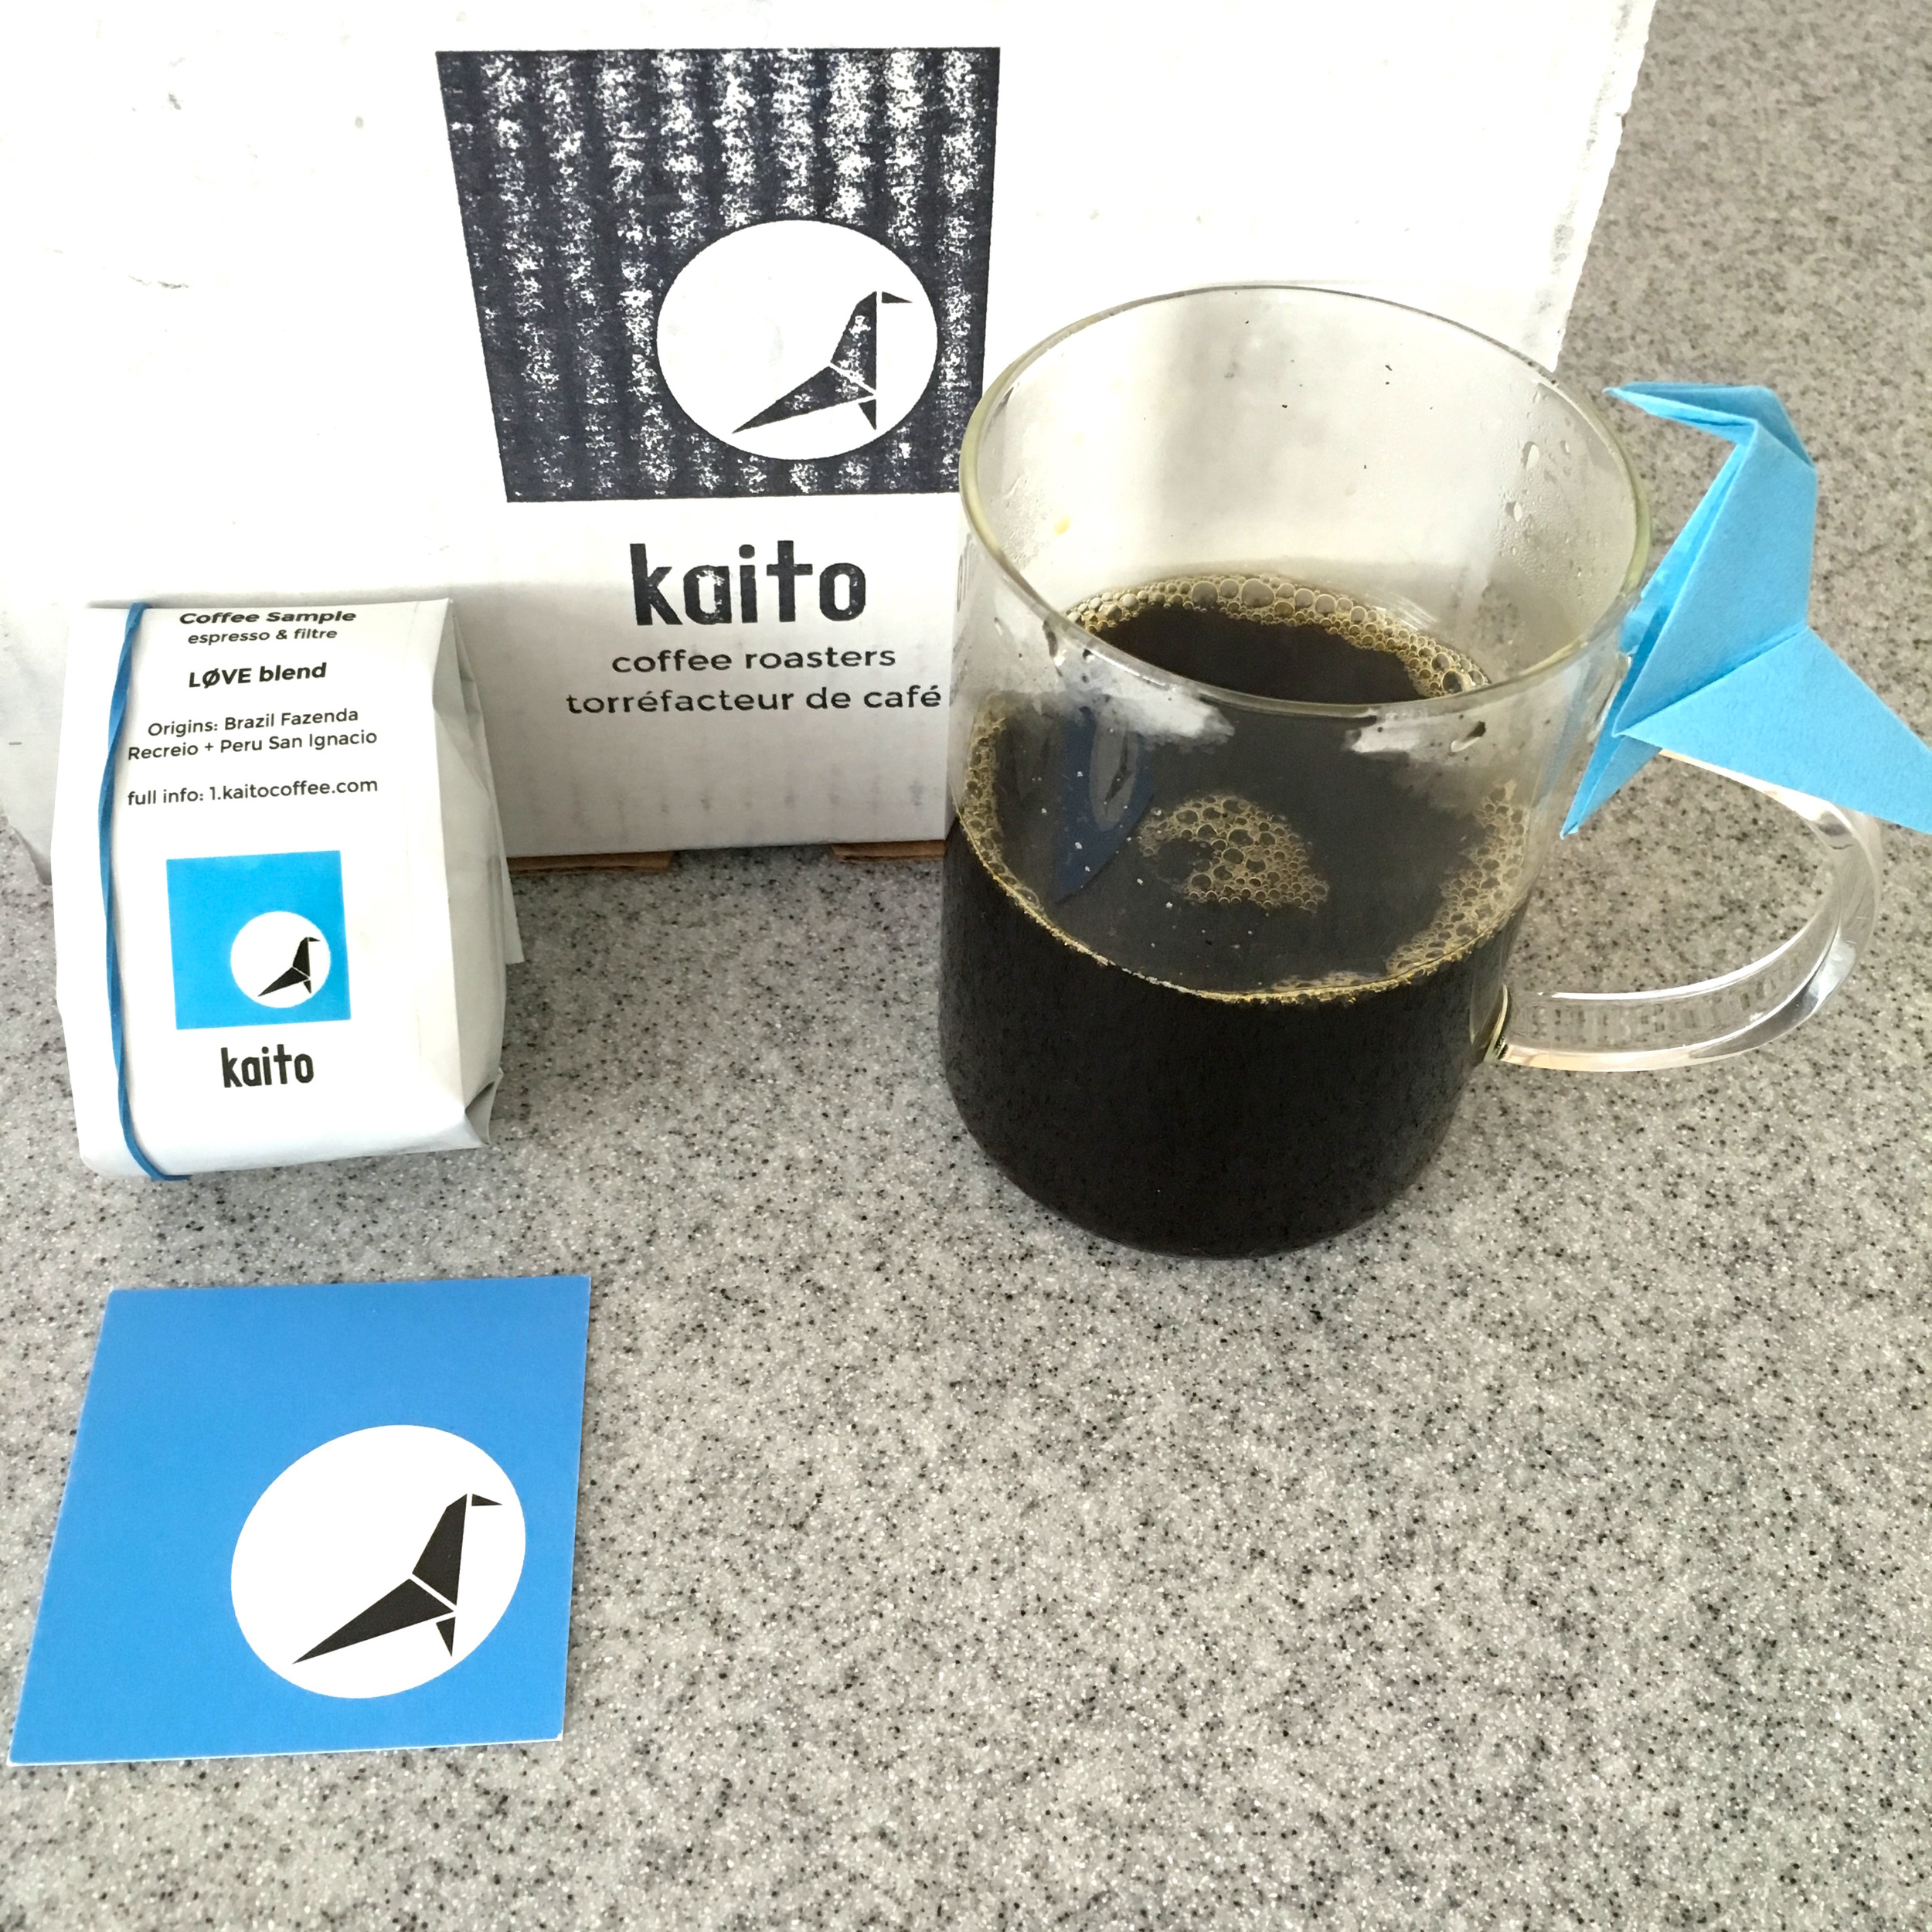 Coffee package from Kaito Coffee